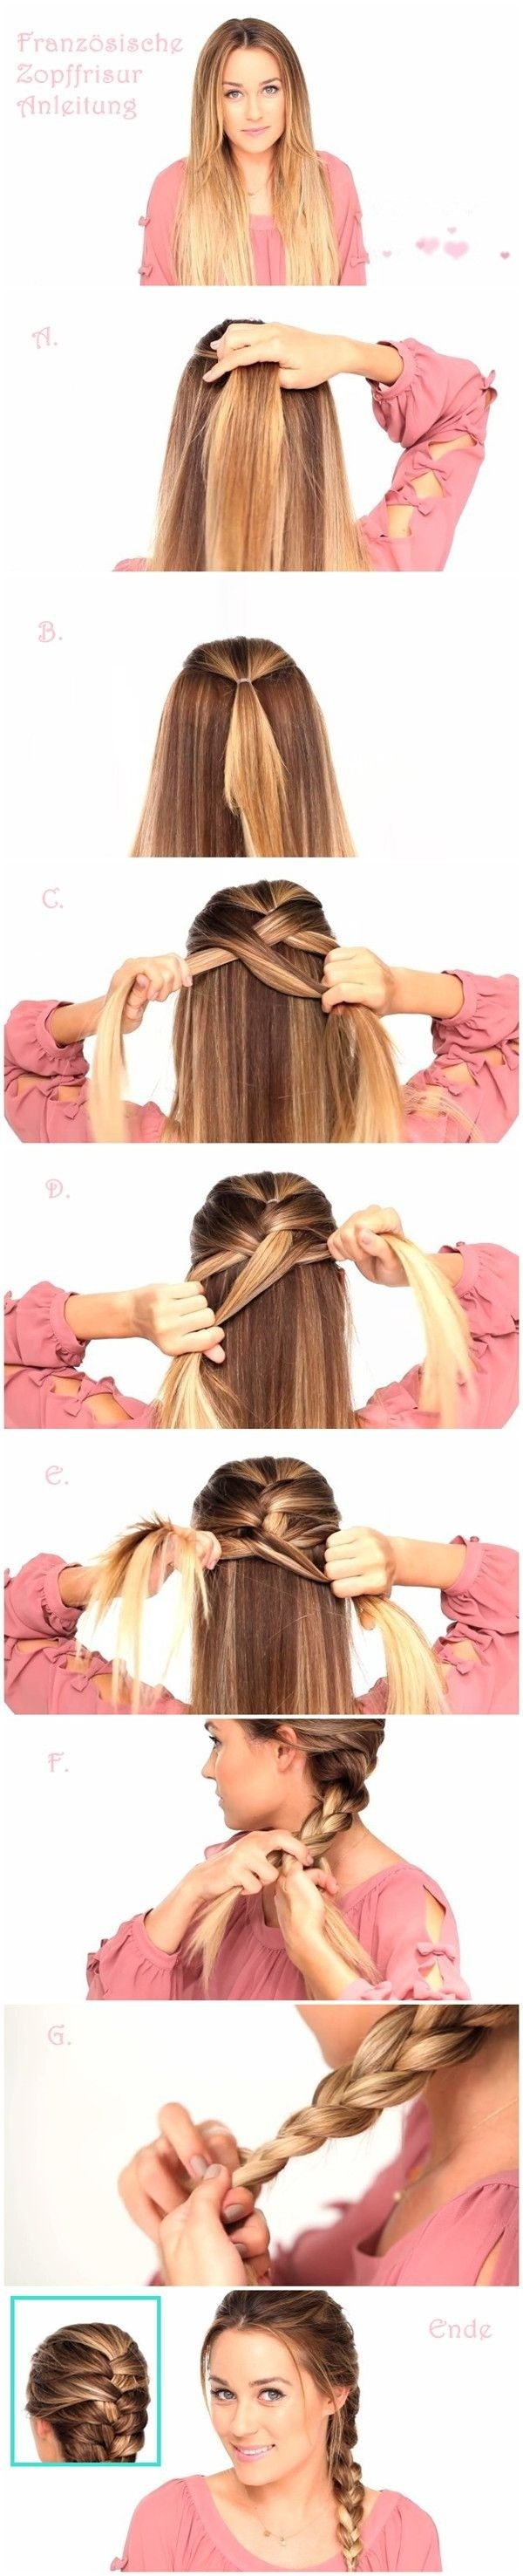 Easy Braided Hairstyles Tutorials: Trendy Hairstyle for Straight Long Hair I love how she puts her hair in a pony tail first, would keep it much more secure.